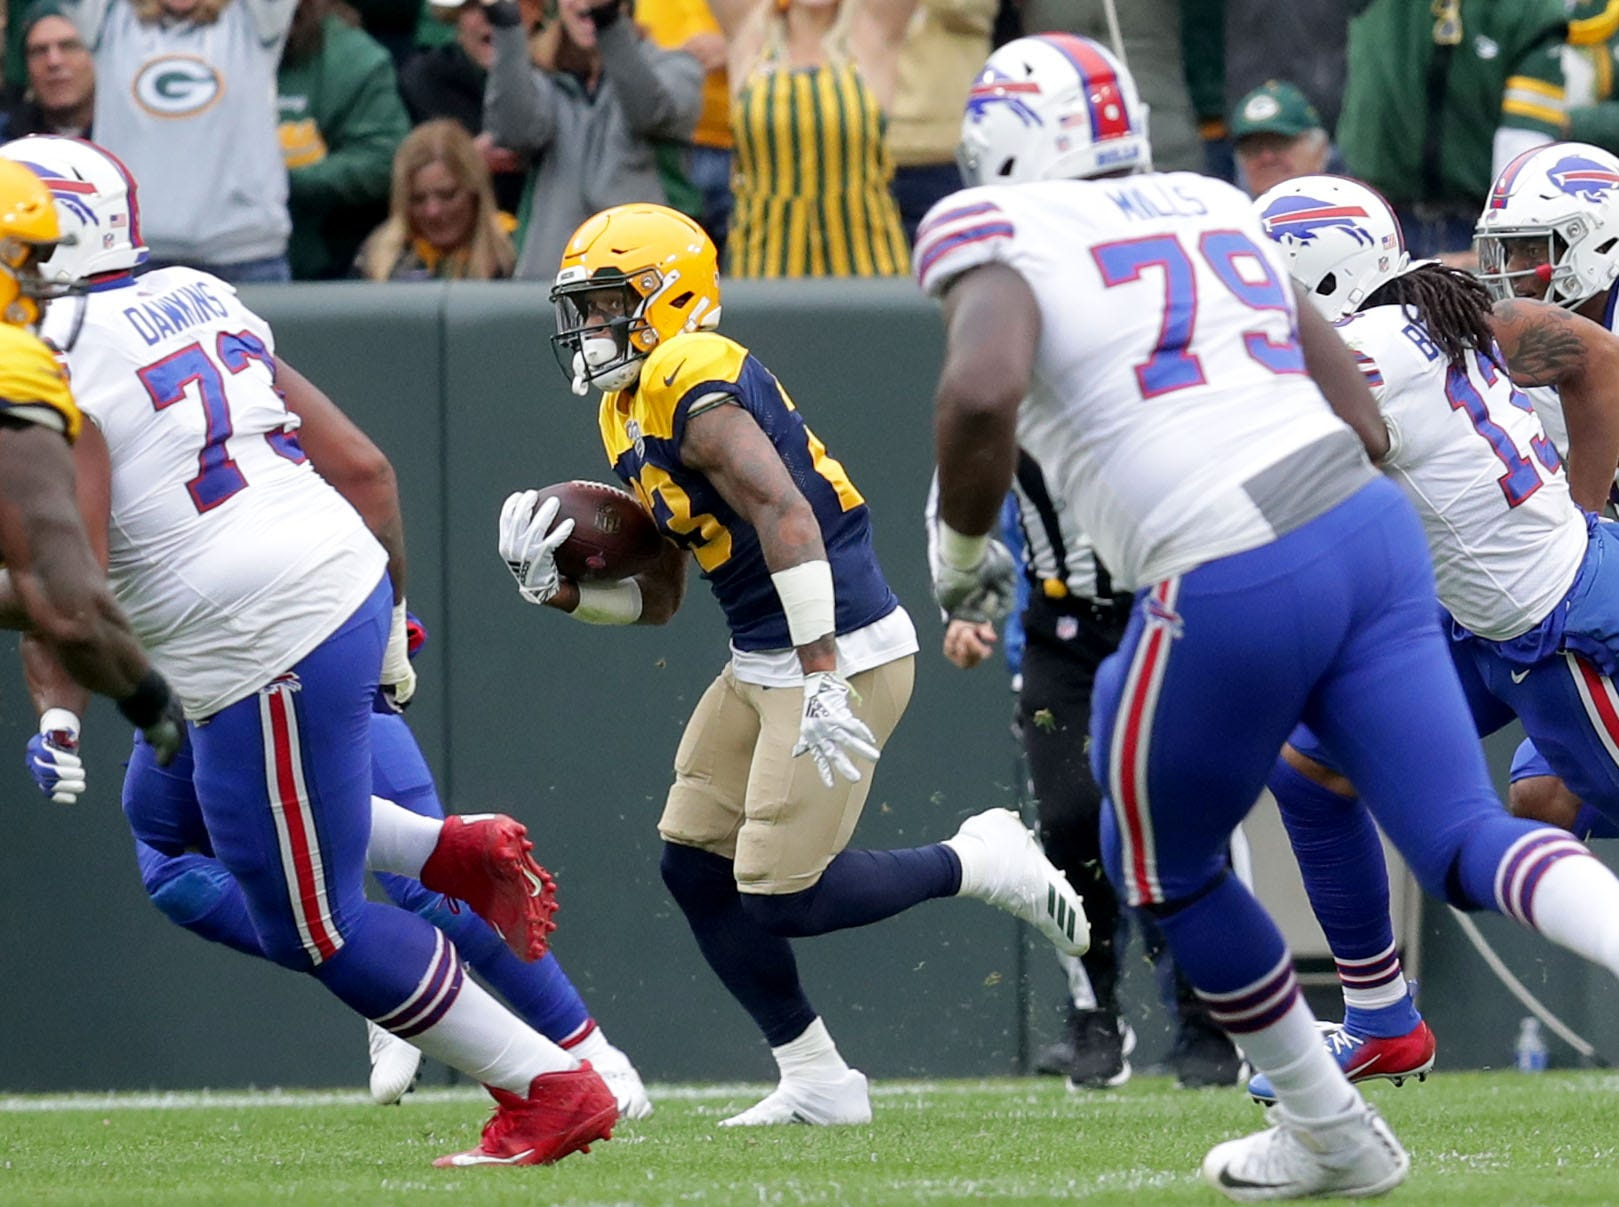 Green Bay Packers cornerback Jaire Alexander (23) runs back an interception during the second quarter of the Green Bay Packers game against the Buffalo Bills at Lambeau Field in Green Bay, Wis. on Sunday, September 30, 2018. Mike De Sisti /USA TODAY NETWORK-Wisconsin